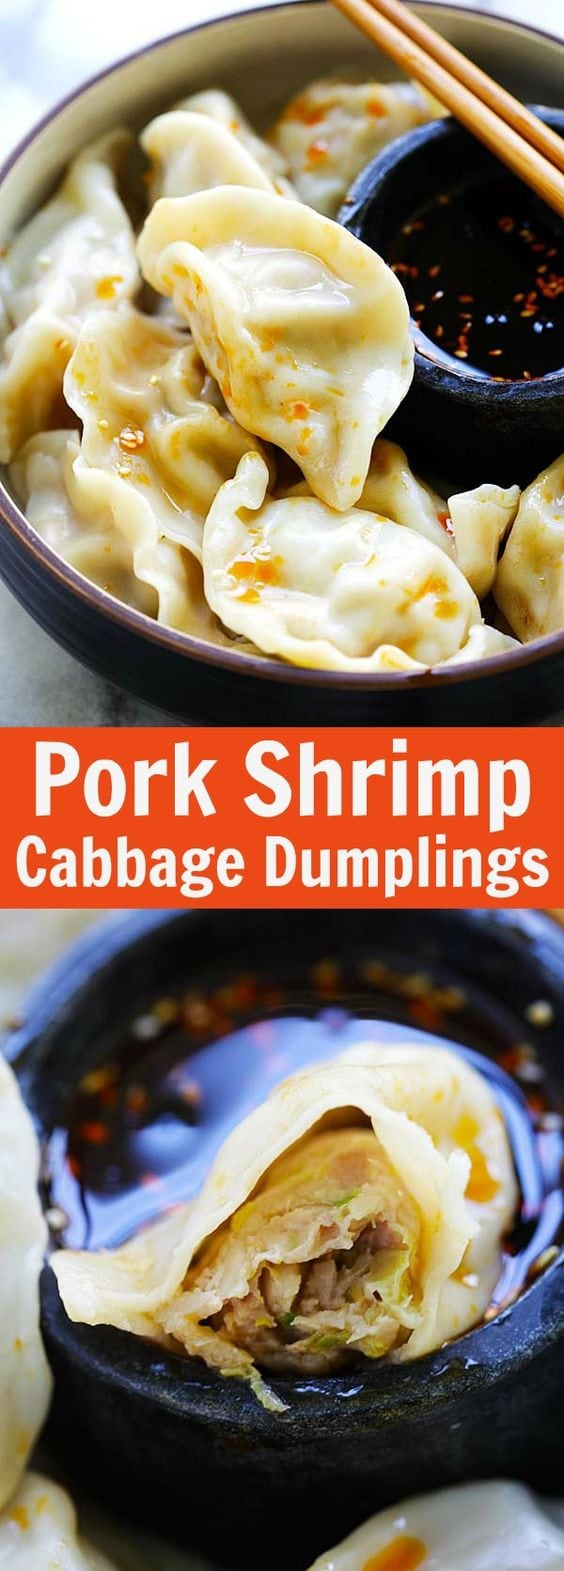 Pork Shrimp and Napa Cabbage Dumplings – juicy dumplings filled with pork, shrimp and napa cabbage. The easiest homemade dumplings recipe ever | rasamalaysia.com